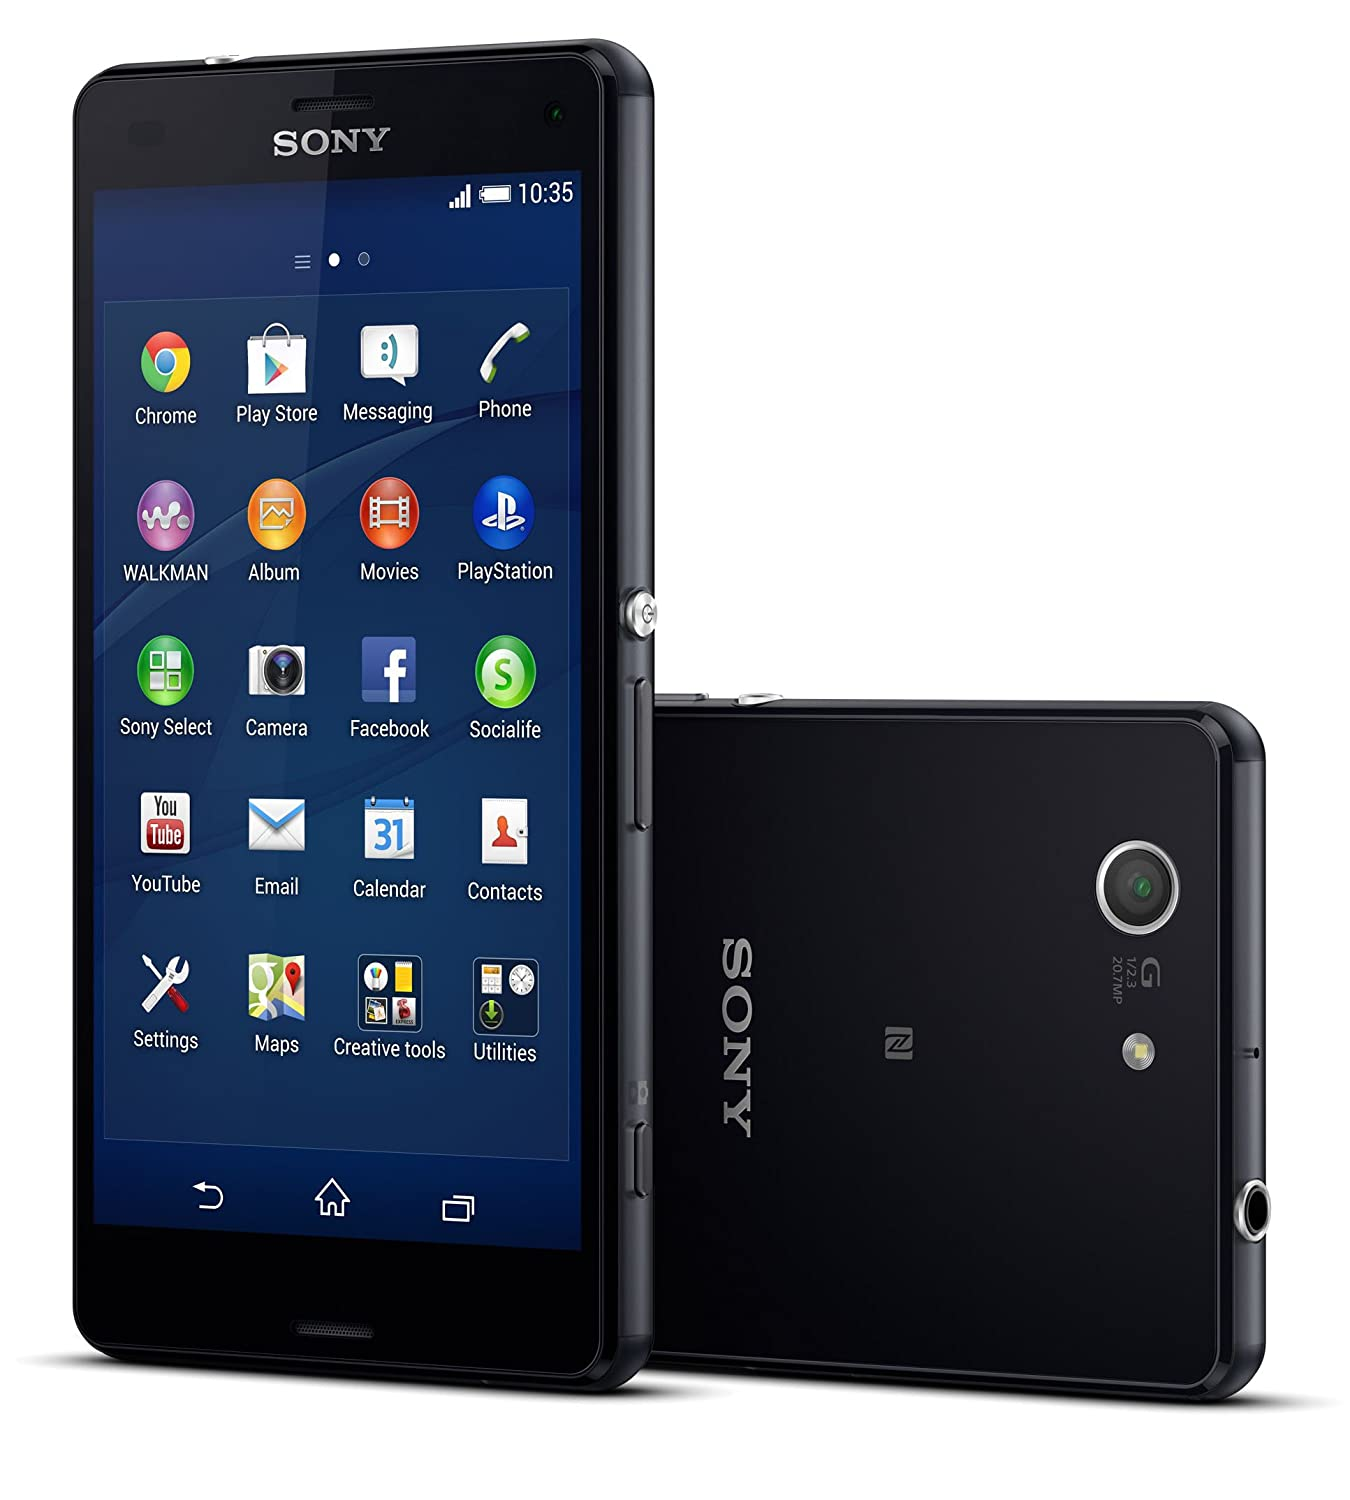 Camera Sony Phone Android amazon com sony xperia z3 compact d5803 16gb 4g lte 4 6 unlocked gsm android smartphone black international versi